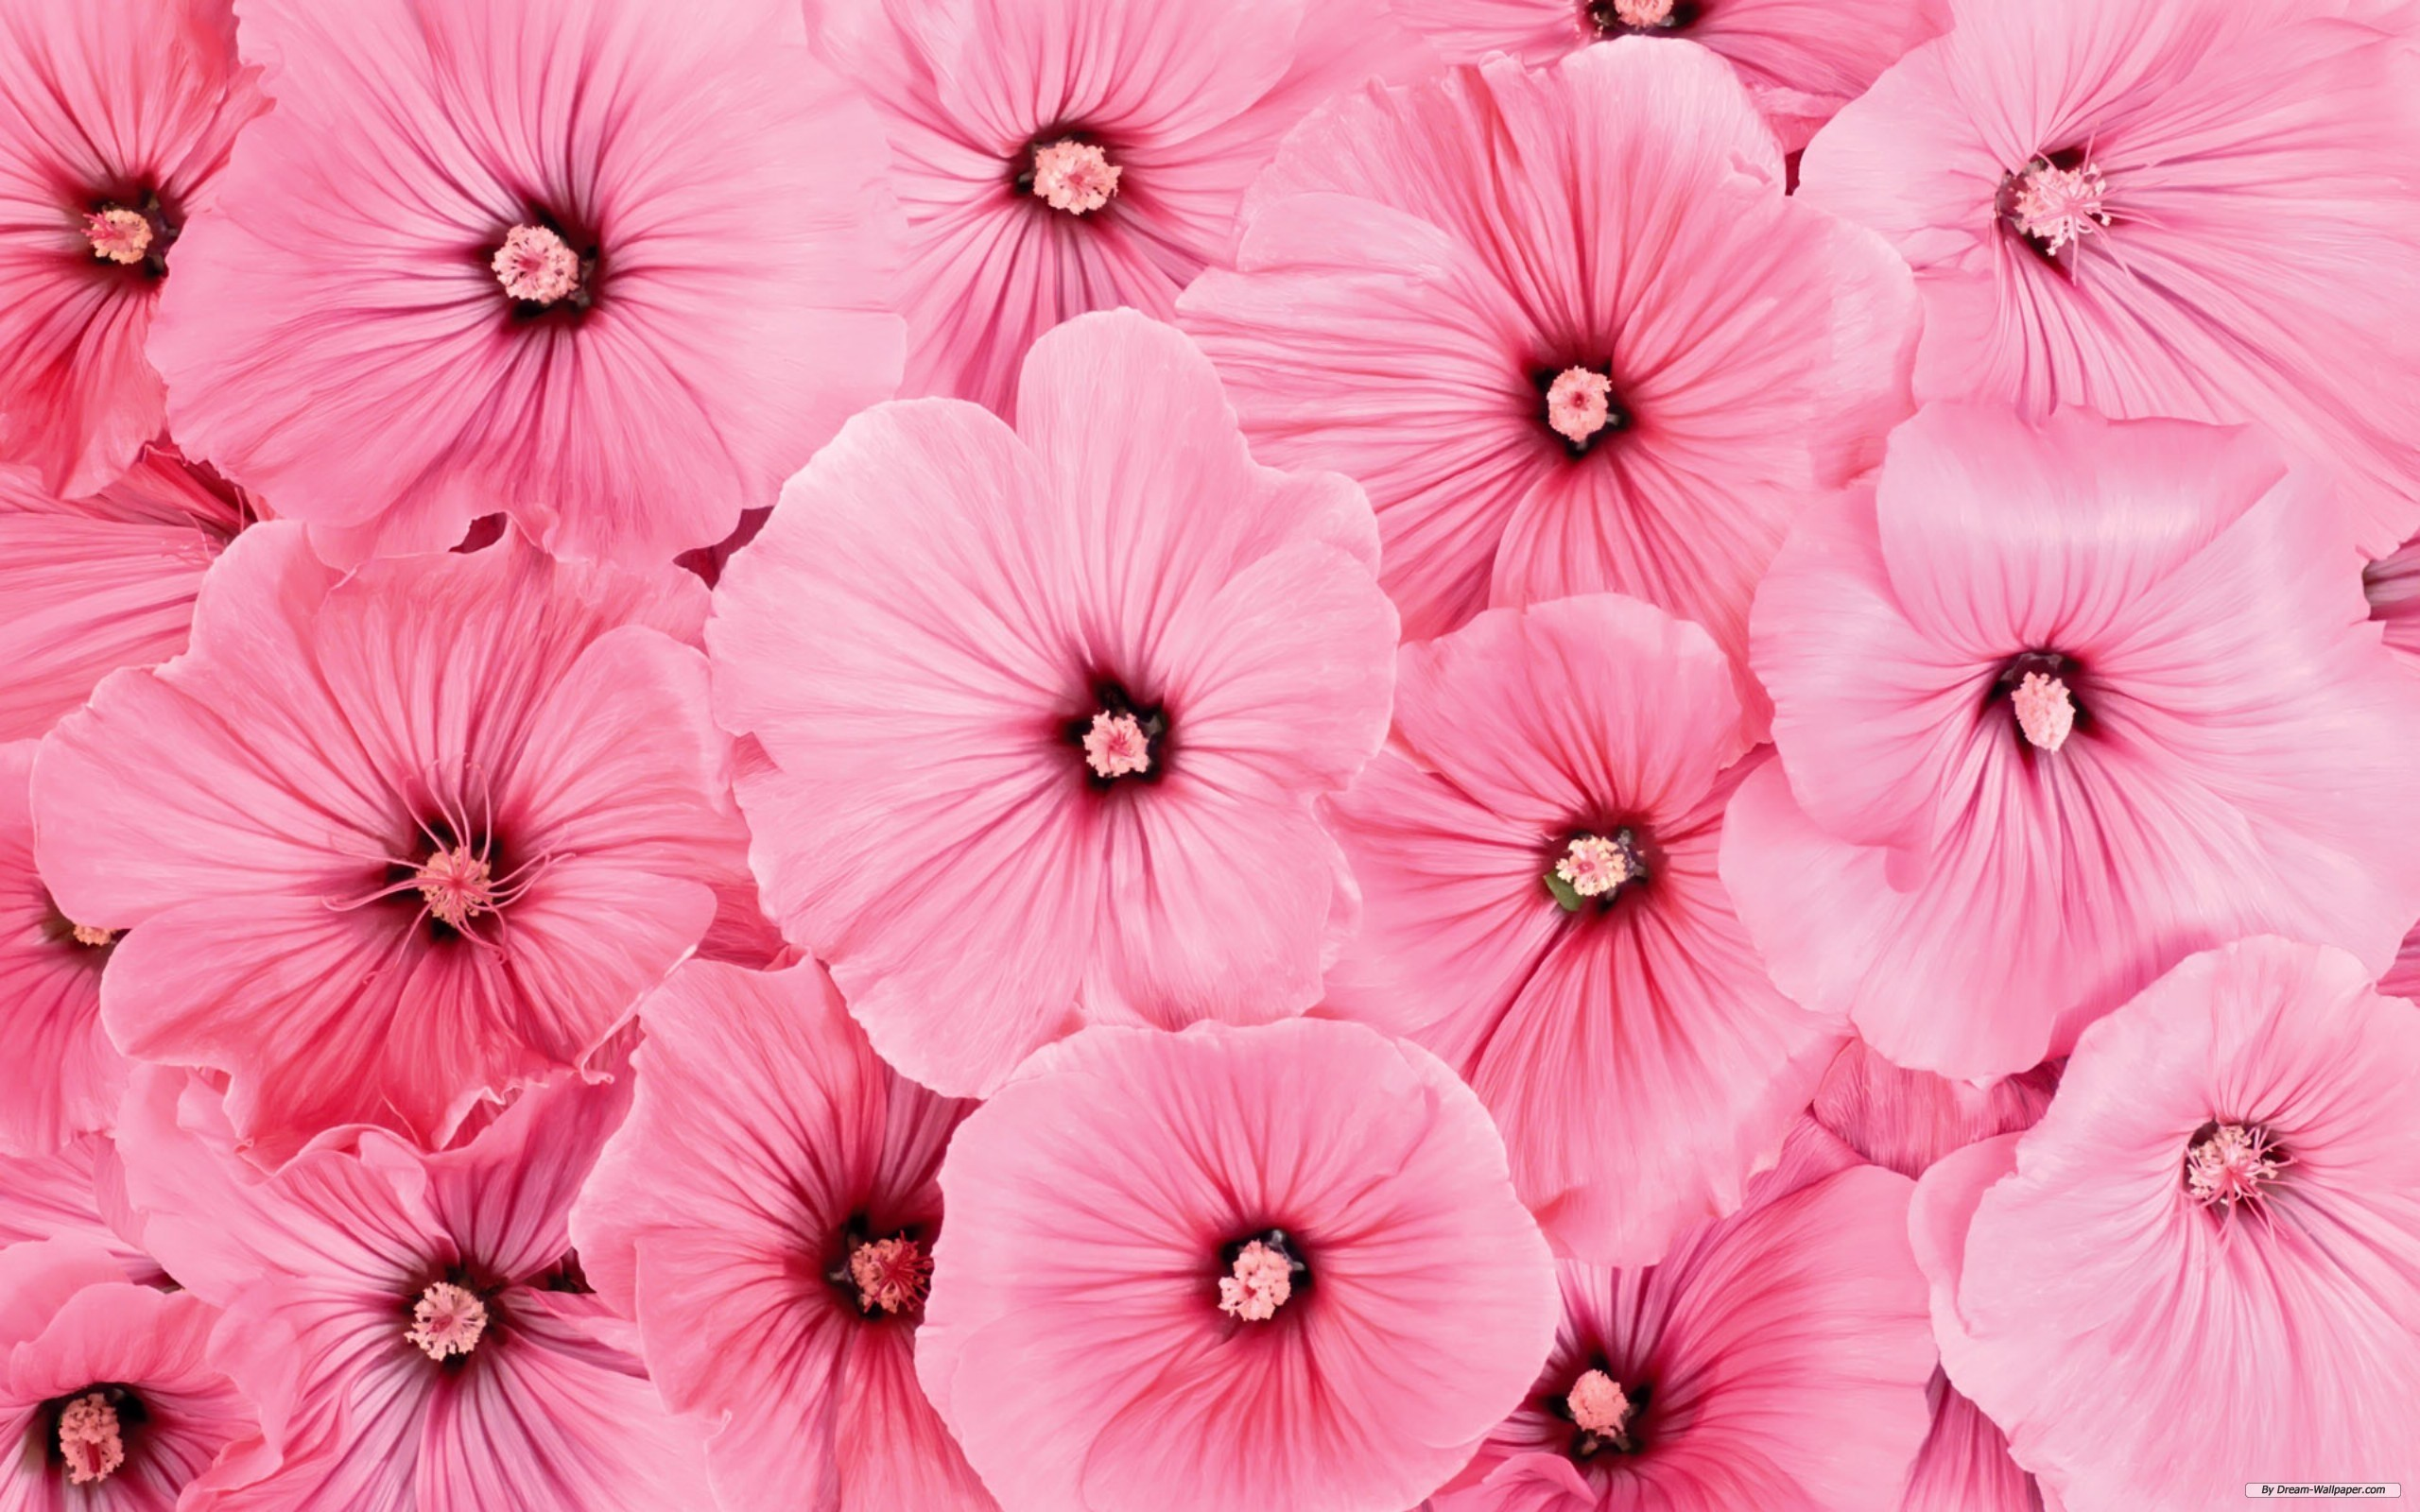 #38986428 Pink Flowers Wallpaper for PC, Mobile